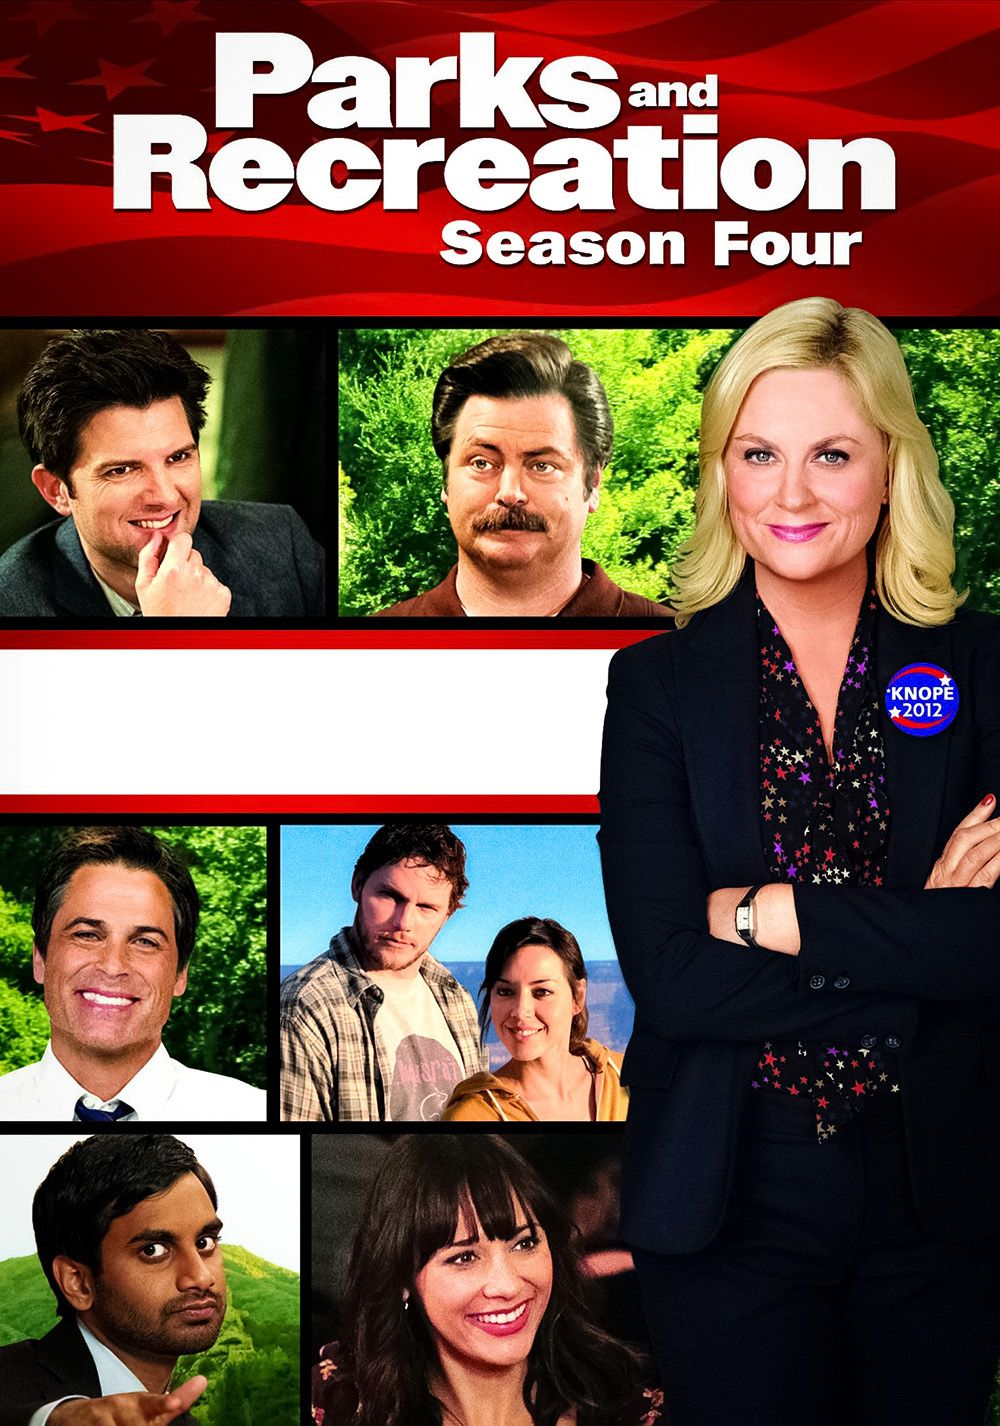 Parks And Recreation 2012 Season 4 Parks And Recreation Tv Funny Amy Poehler